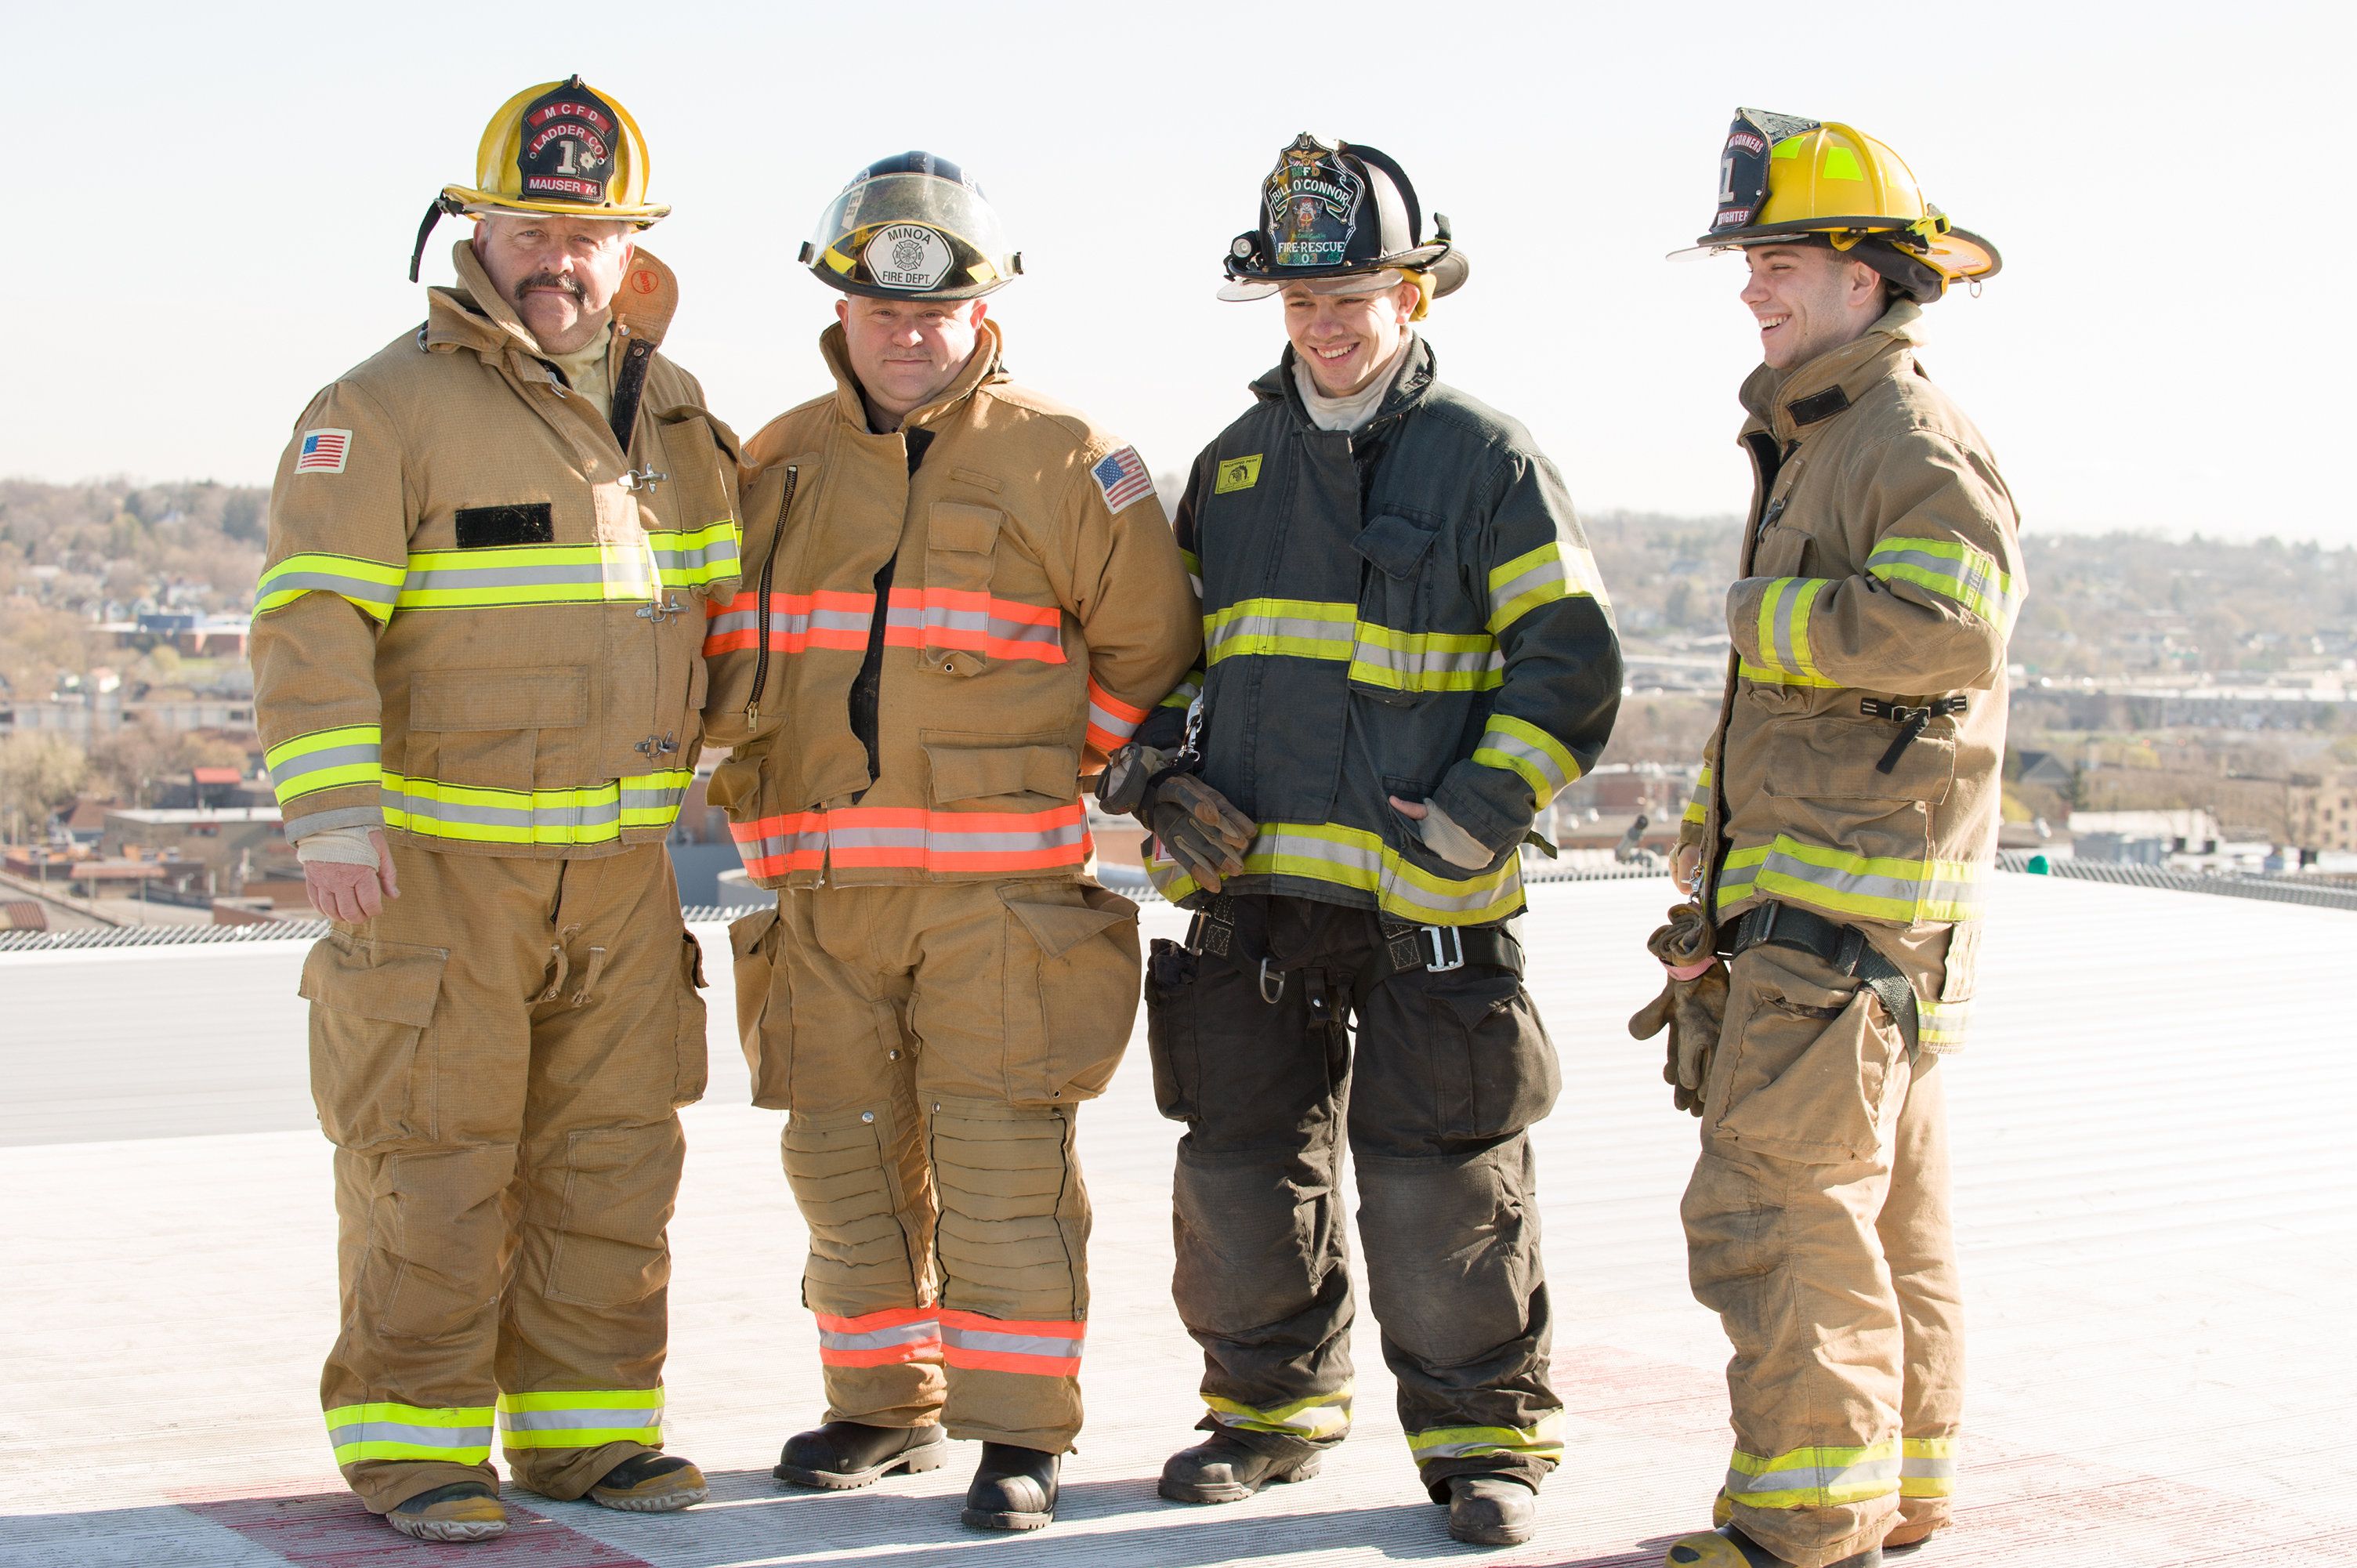 Volunteer firefighters thrive on thank you's | What's Up ...